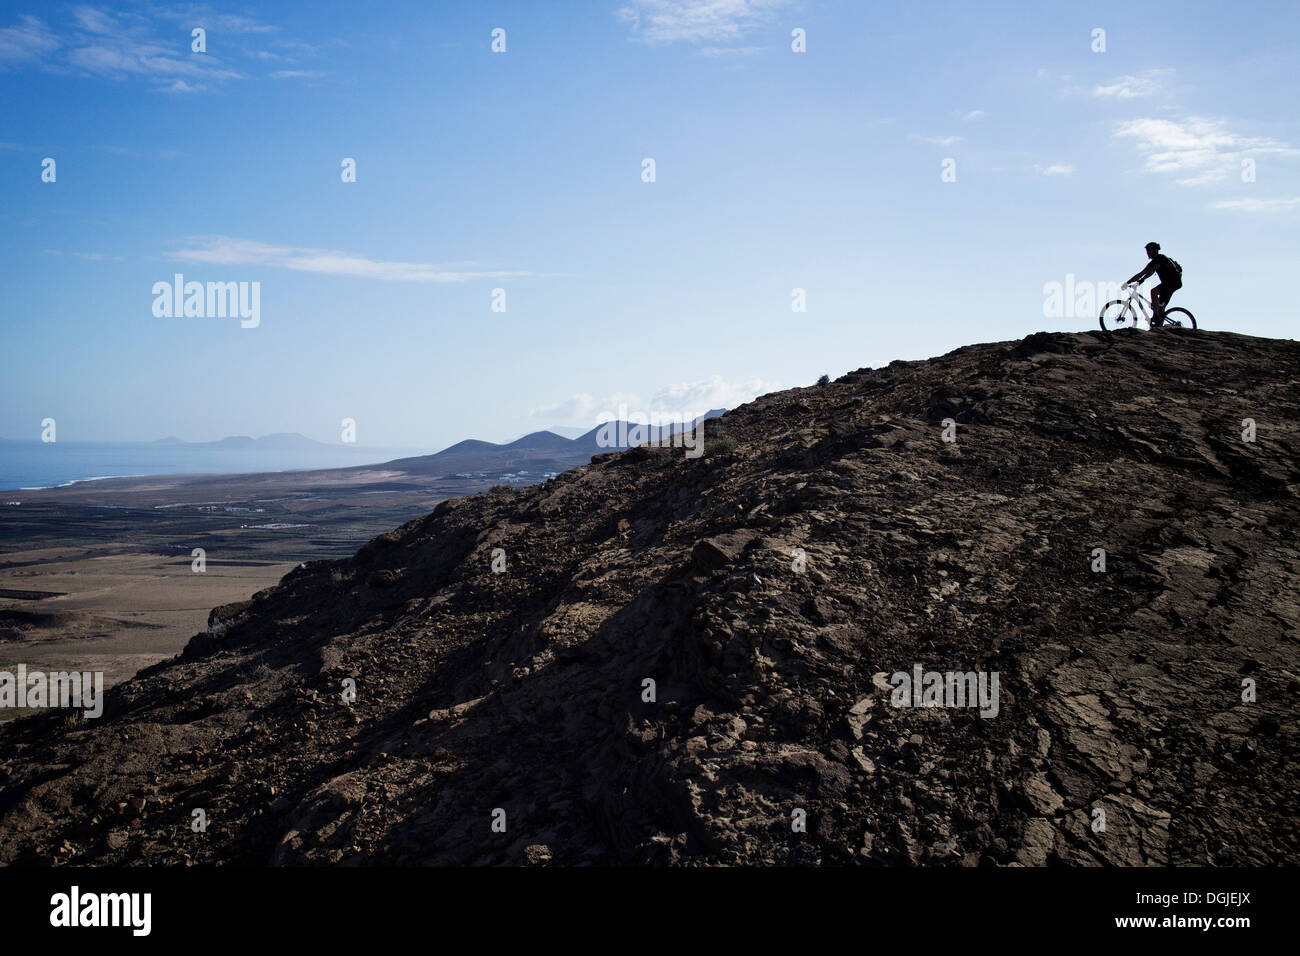 Man mountain biking, Pica del Cuchillo, Lanzarote - Stock Image